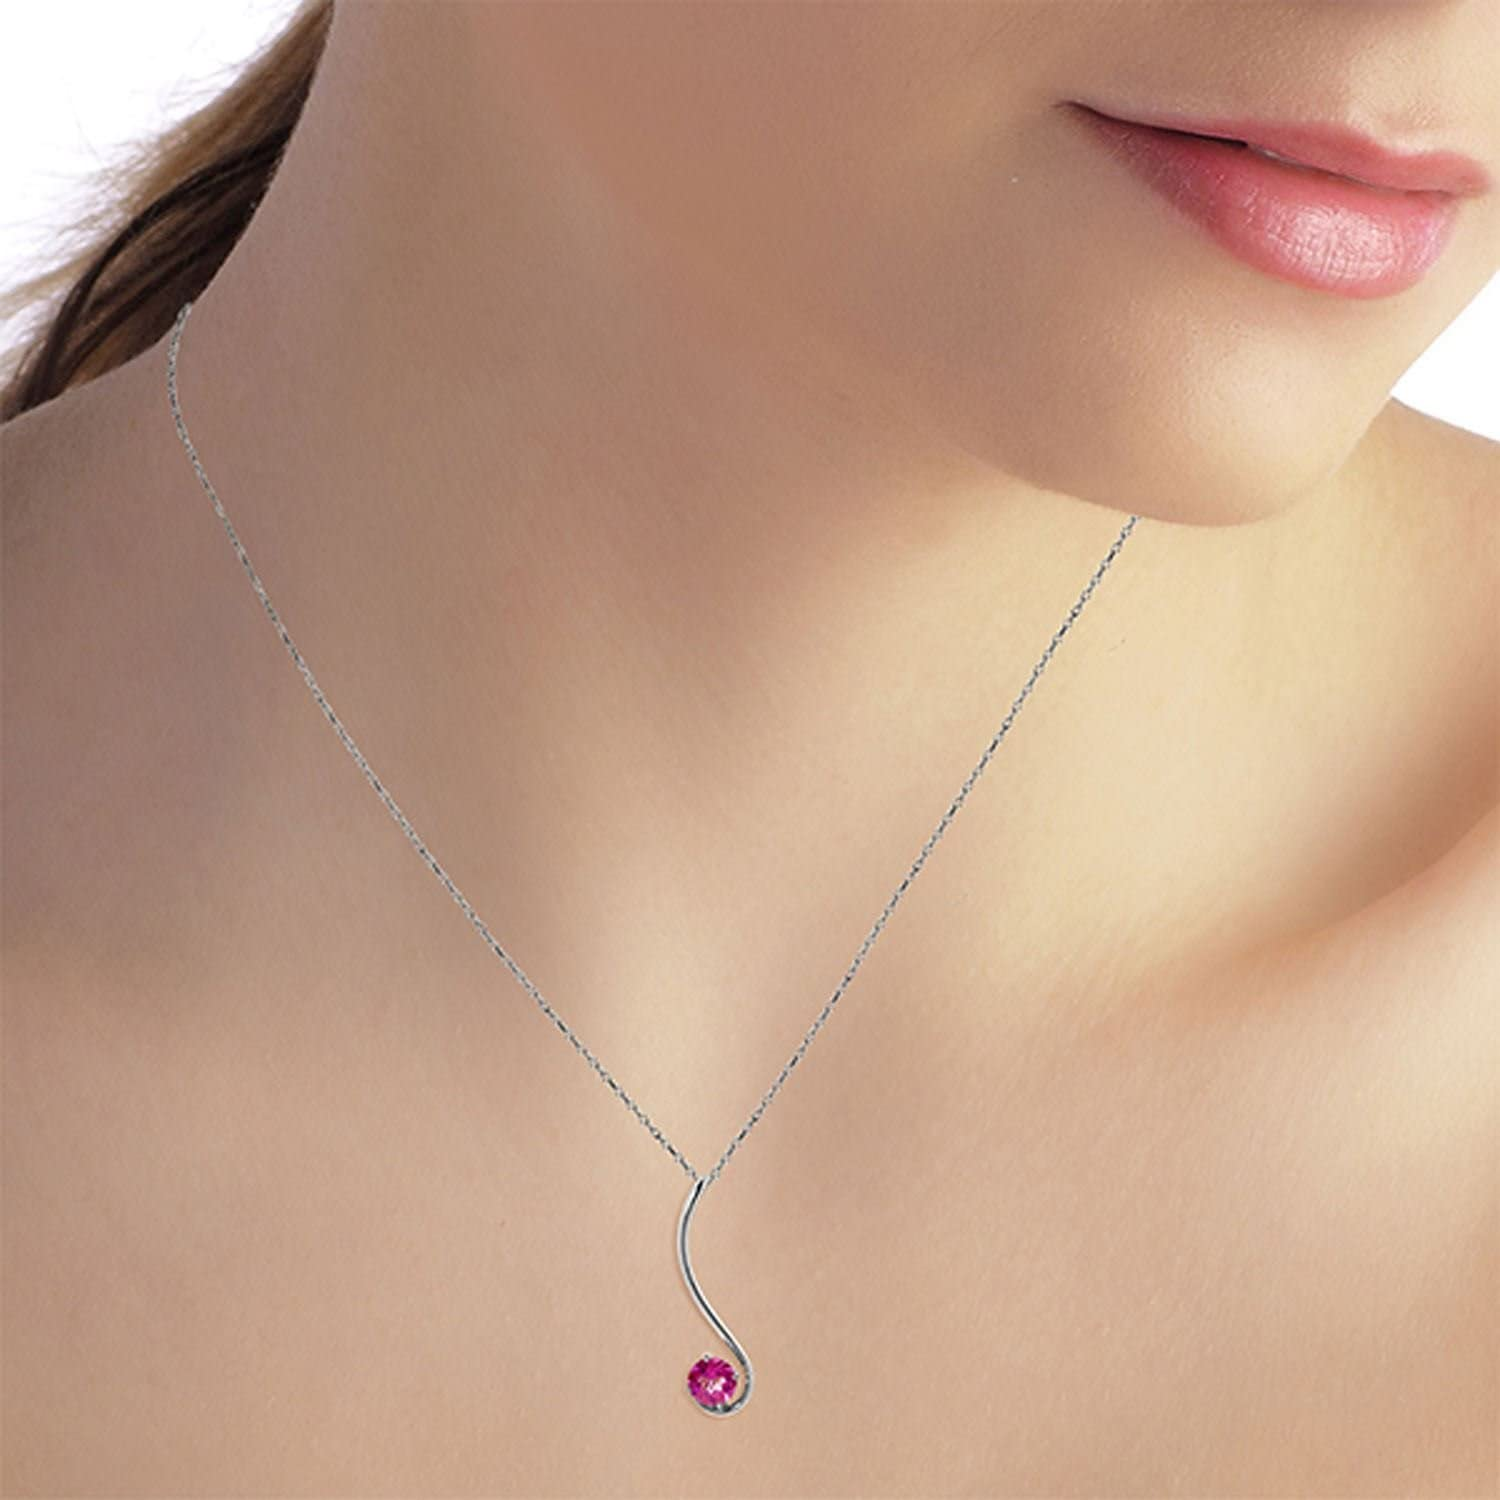 ALARRI 0.55 CTW 14K Solid White Gold Unfalling Sense Pink Topaz Necklace with 18 Inch Chain Length